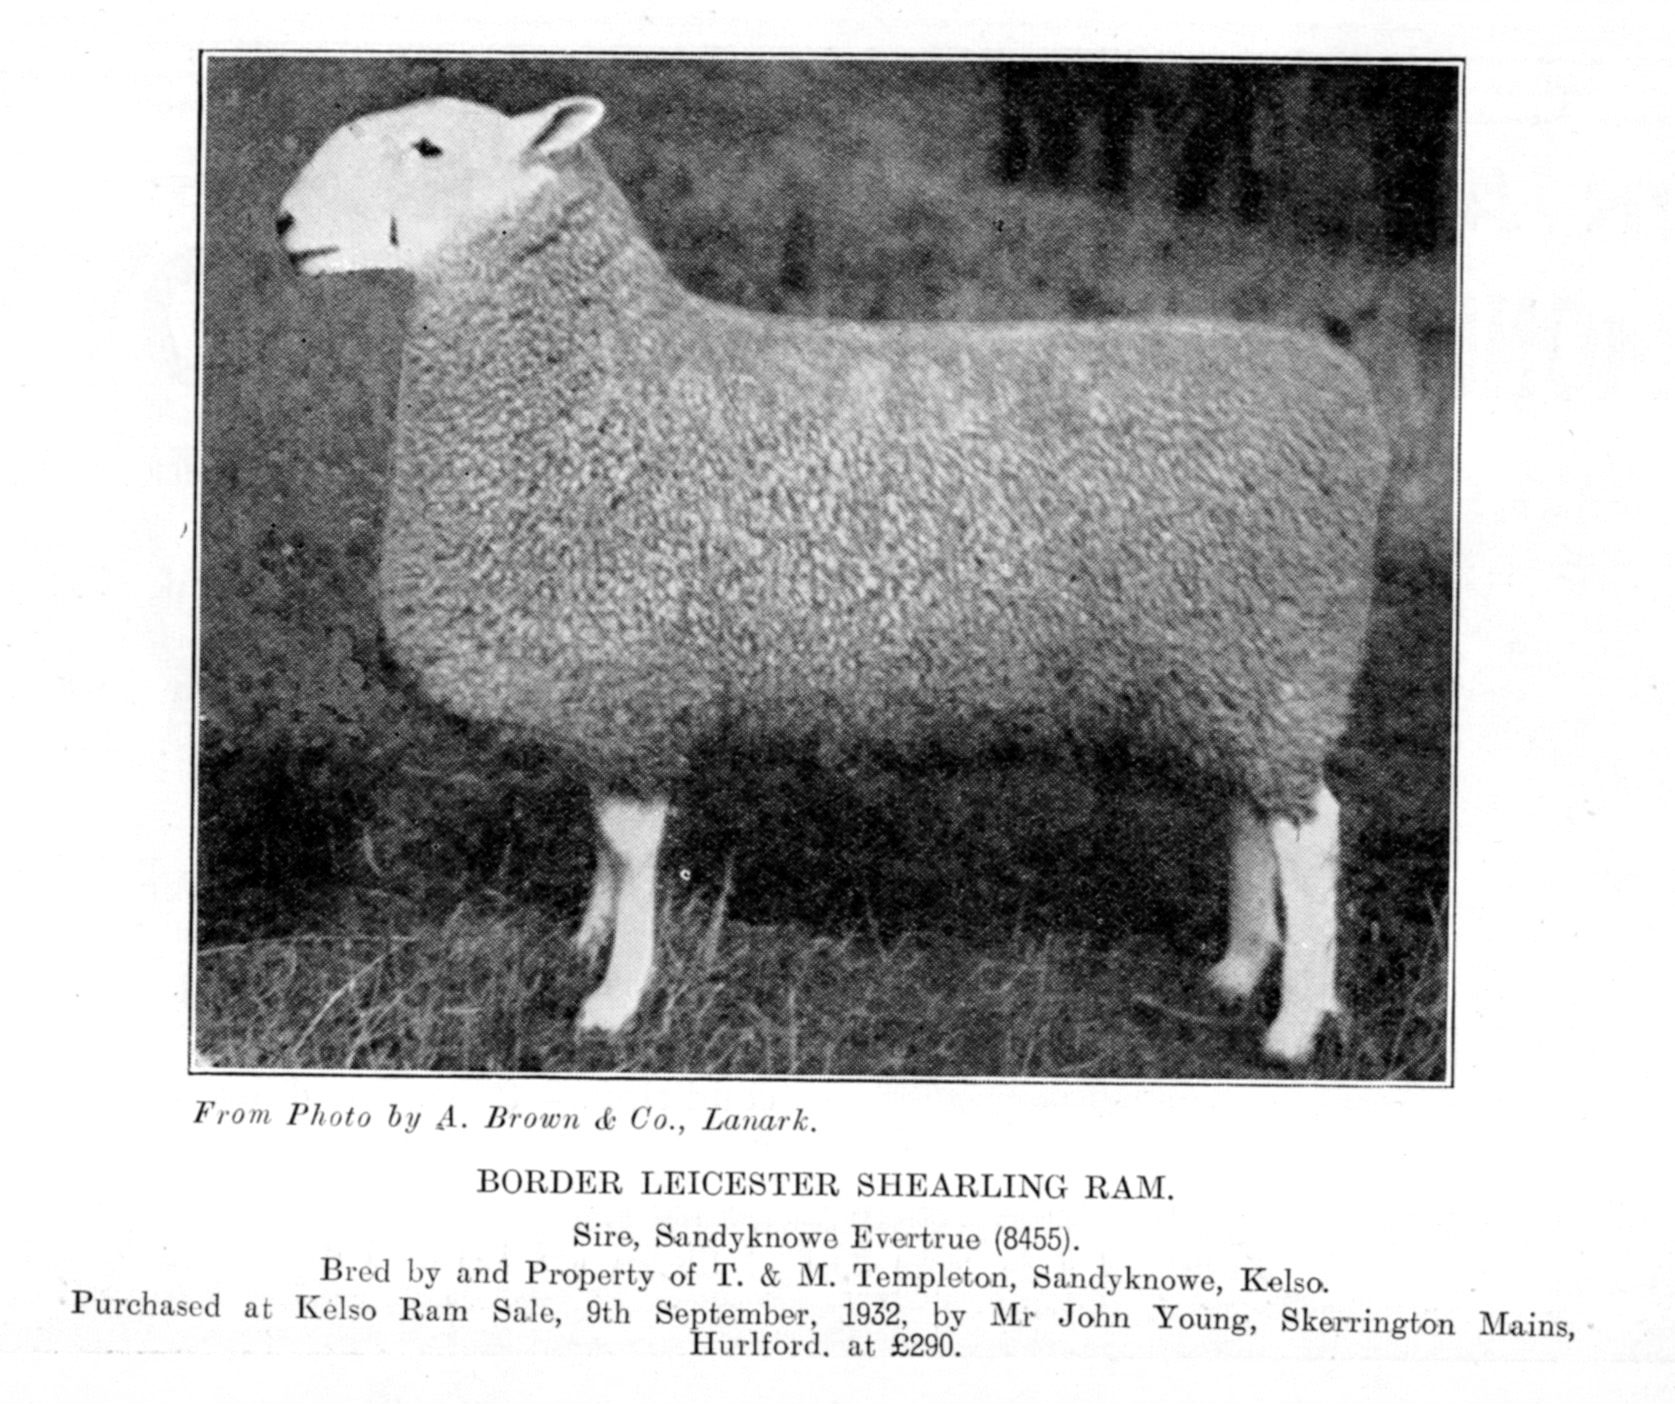 In 1932, this Border Leicester ram from T and M Templeton, Sandyknowes, Kelso, sold for £290 to John Young, Skerrington Mains, Hurlford